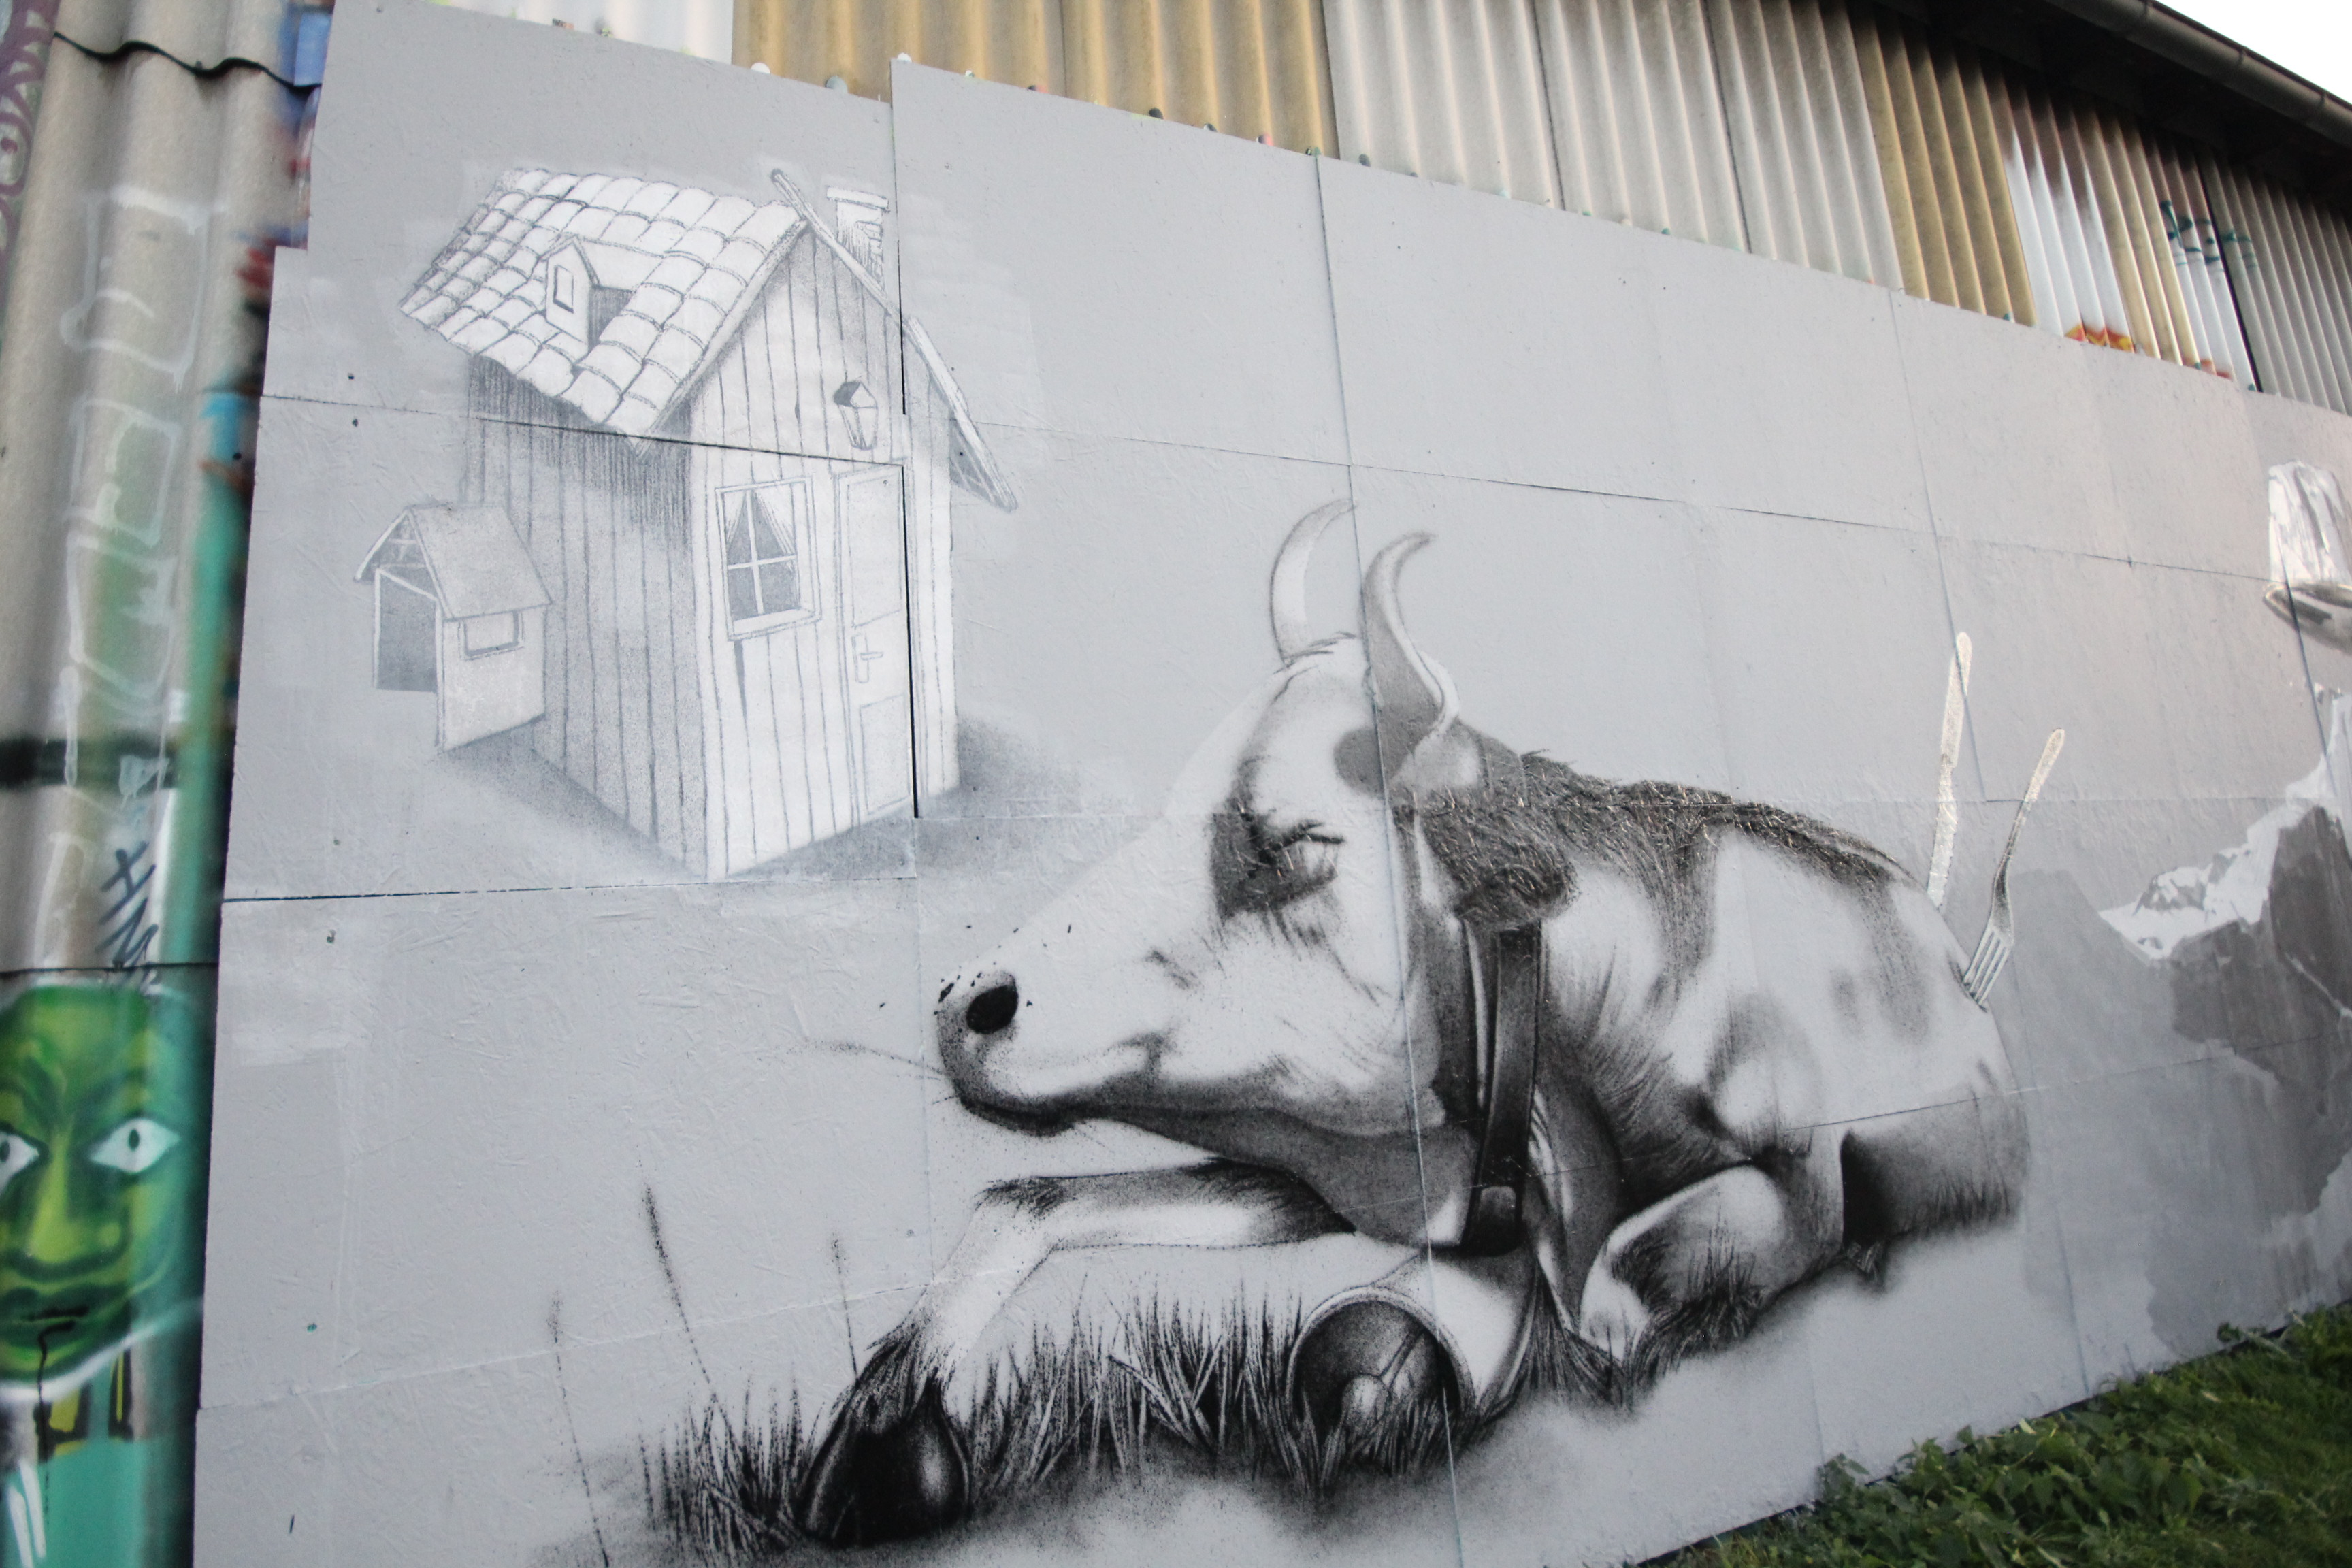 Two new murals from Ethos in Switzerland and USA Artes & contextos Ethos 3